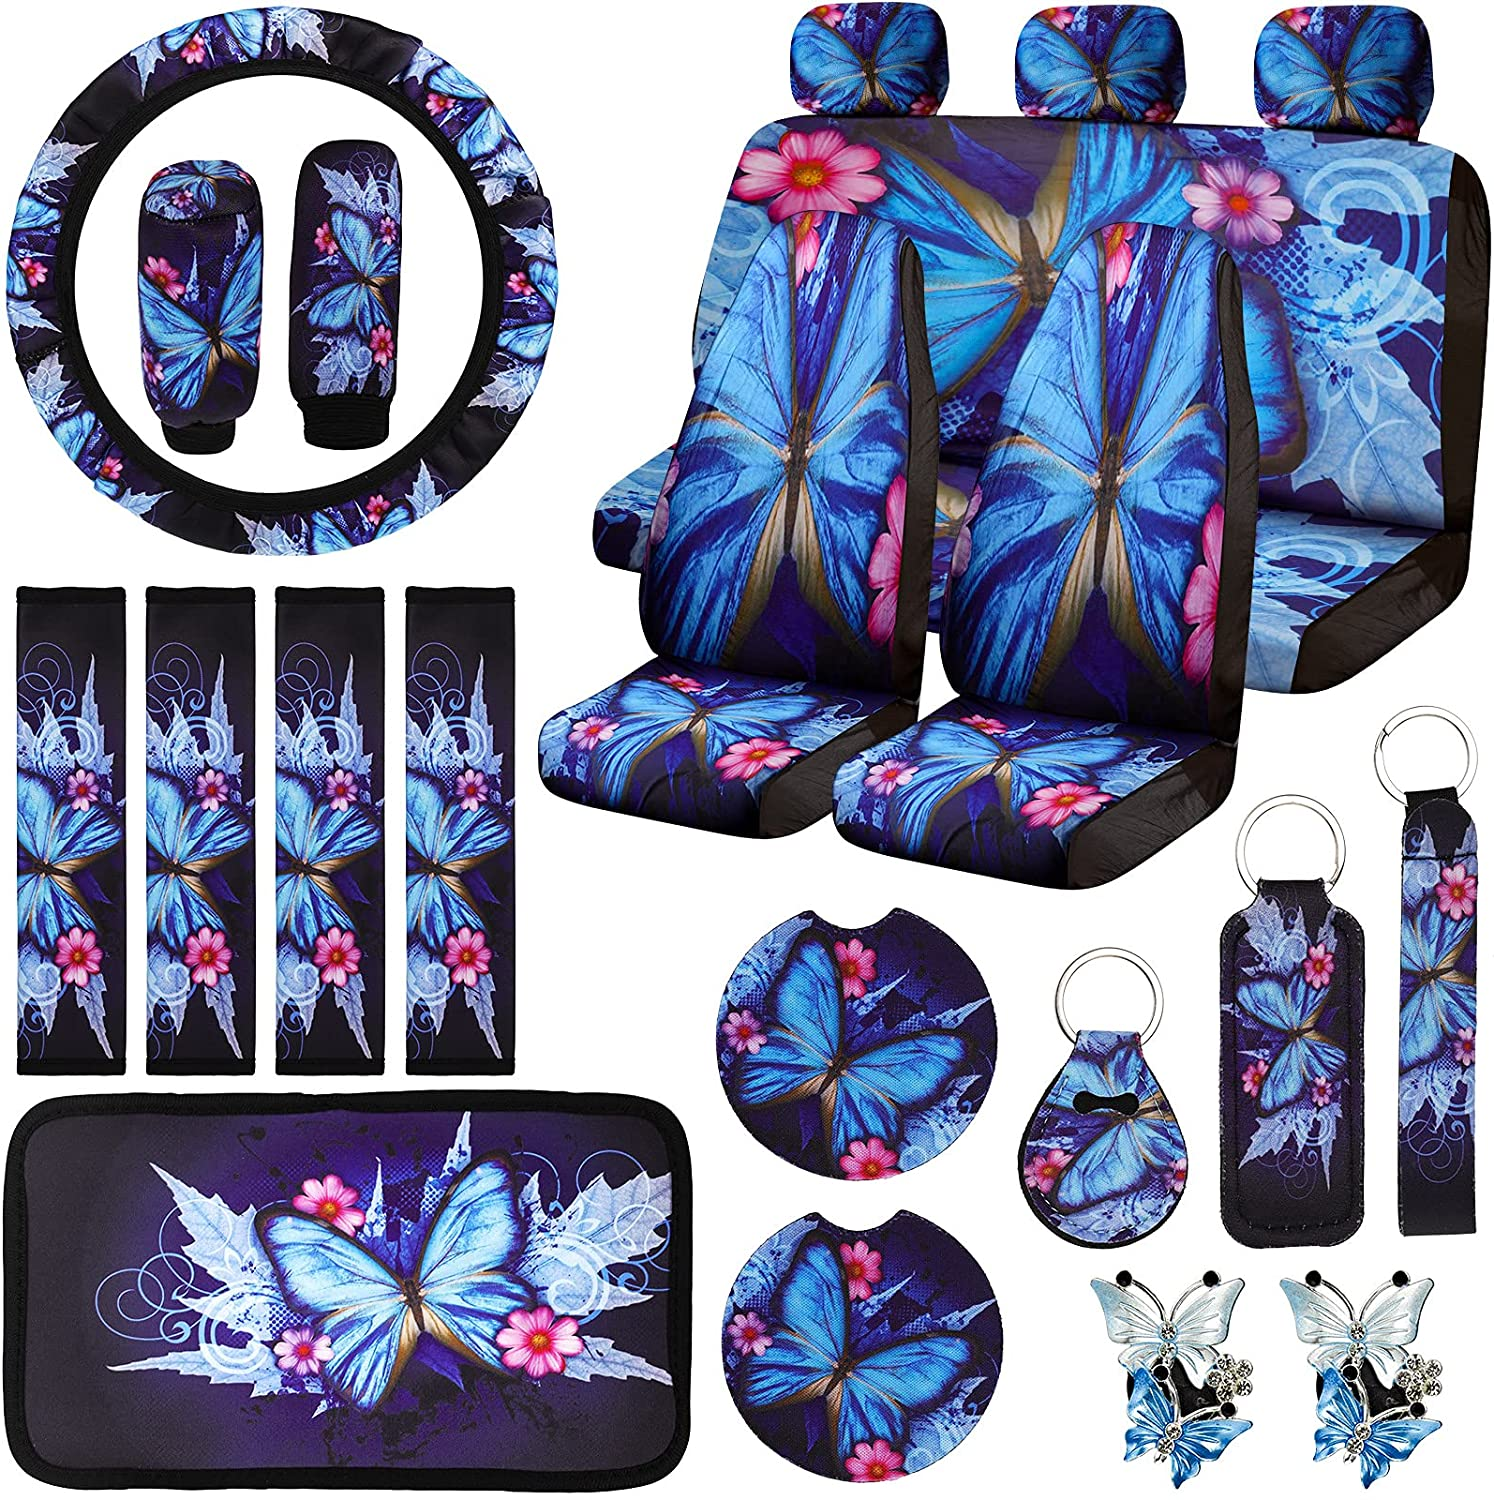 22 Pieces Butterfly Car Max 66% OFF S Seat Covers online shop Accessories